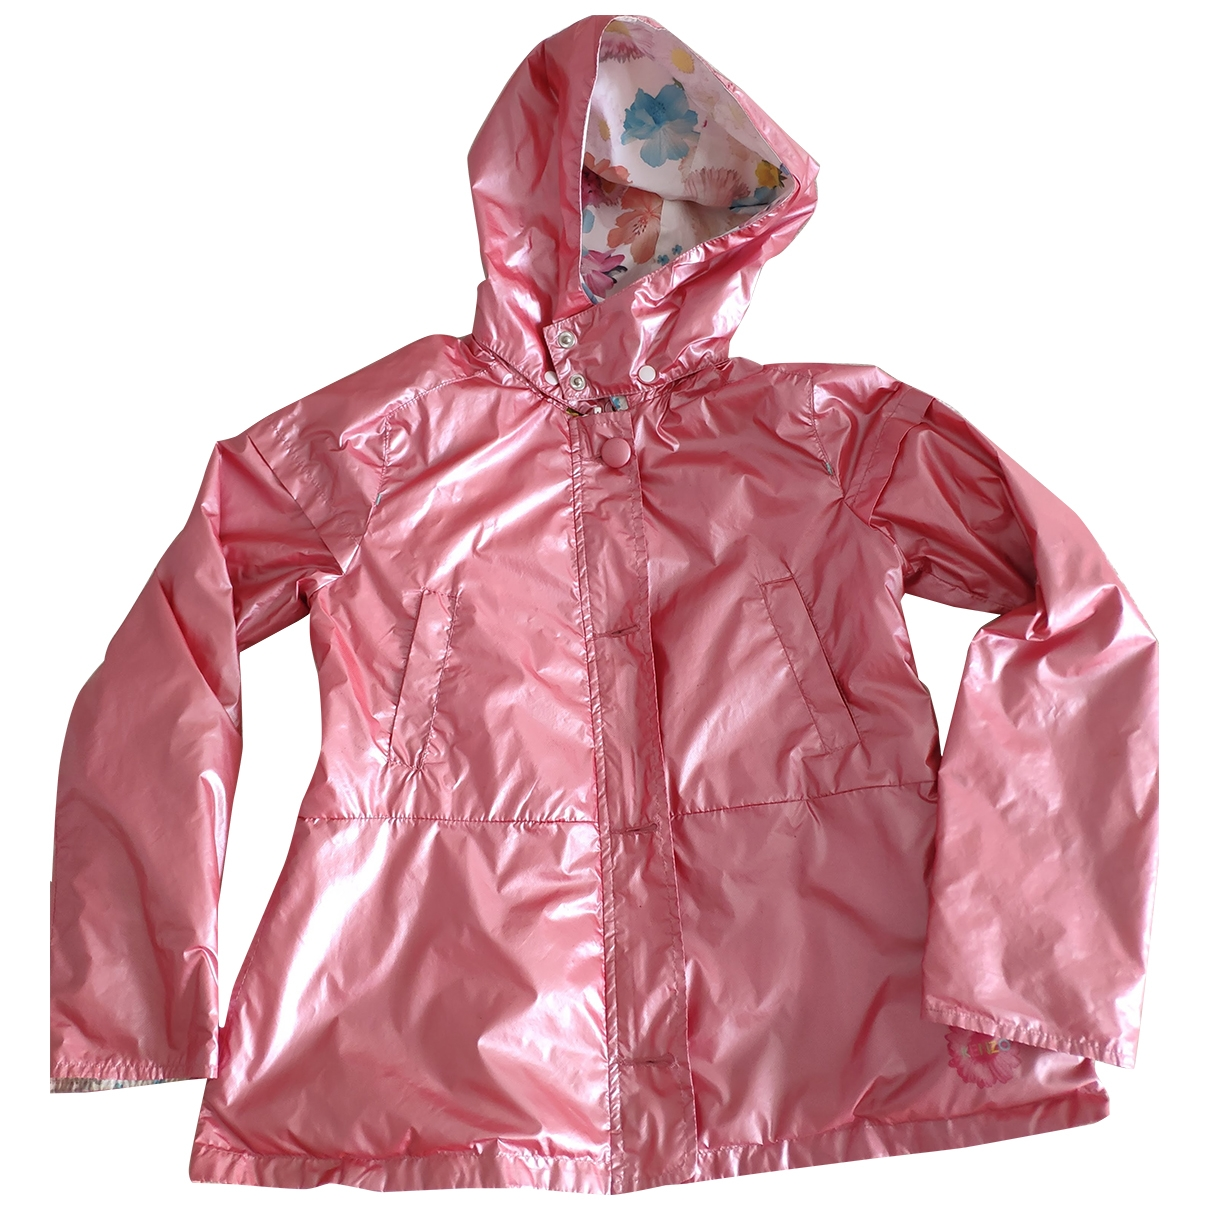 Kenzo \N Pink jacket & coat for Kids 8 years - up to 128cm FR